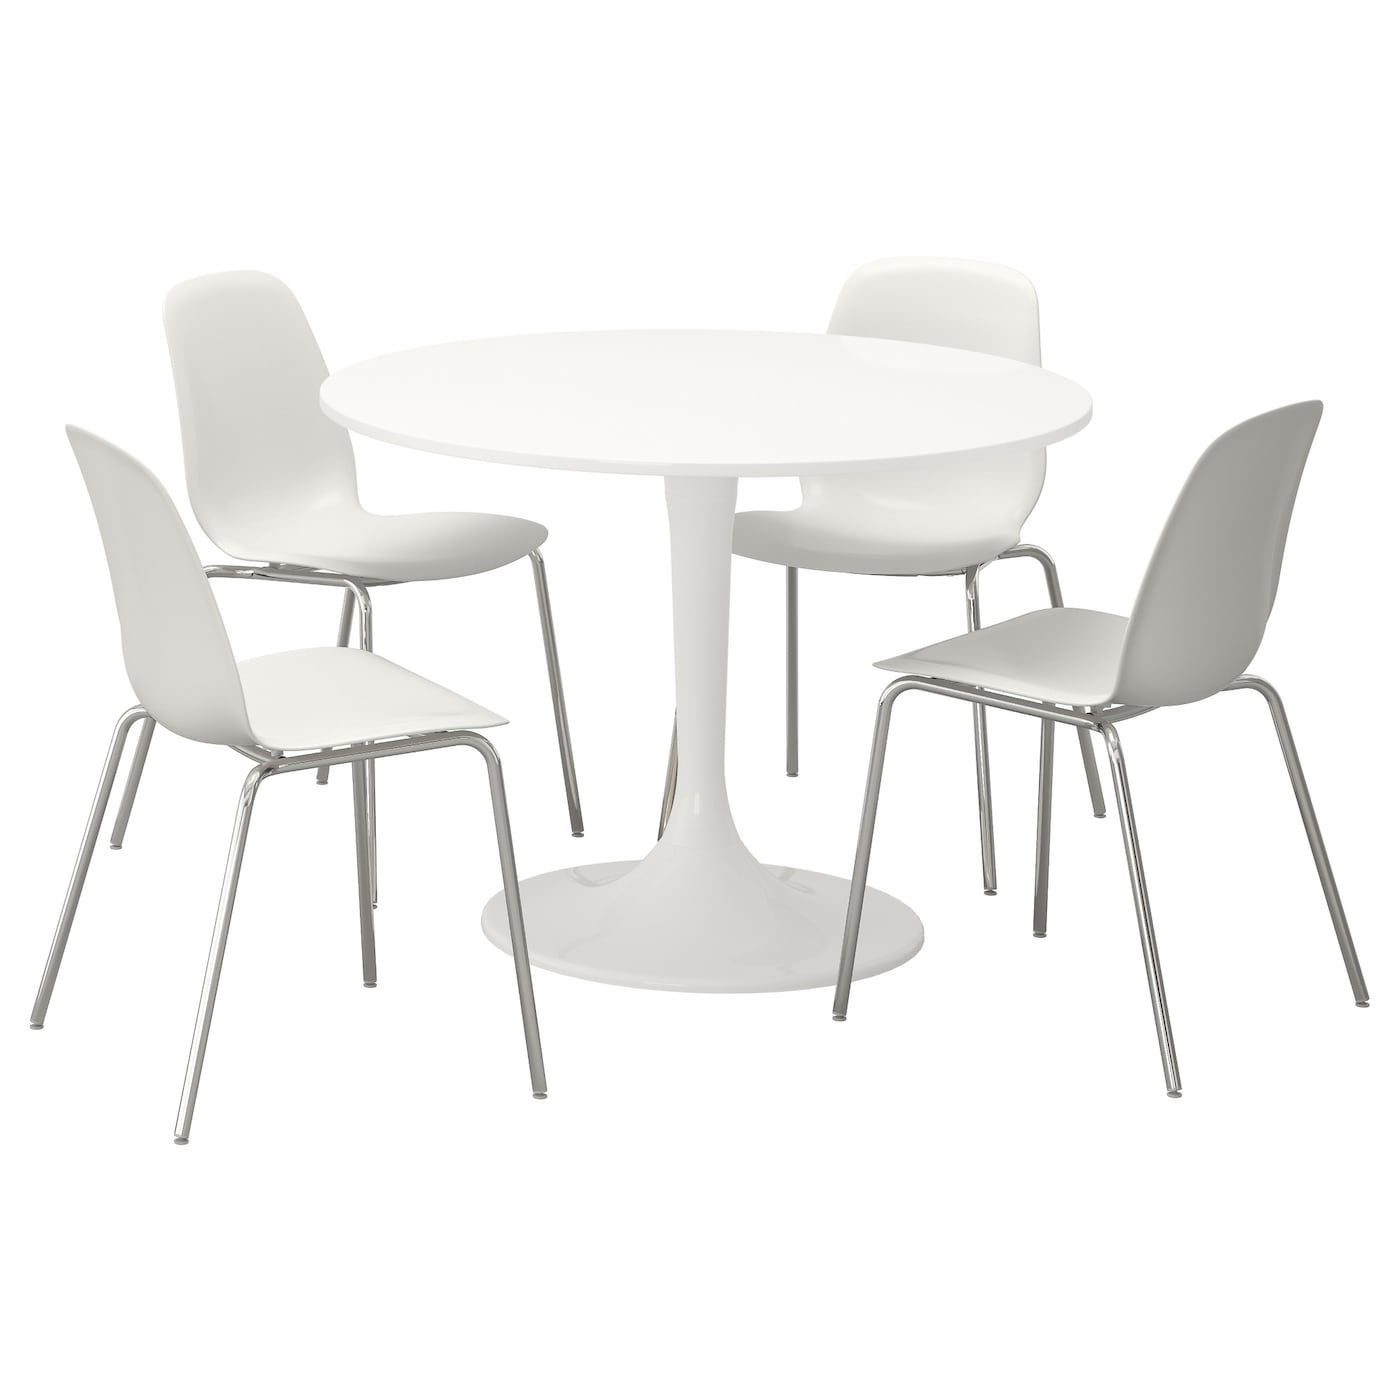 docksta leifarne table and 4 chairs white white 105 cm ikea